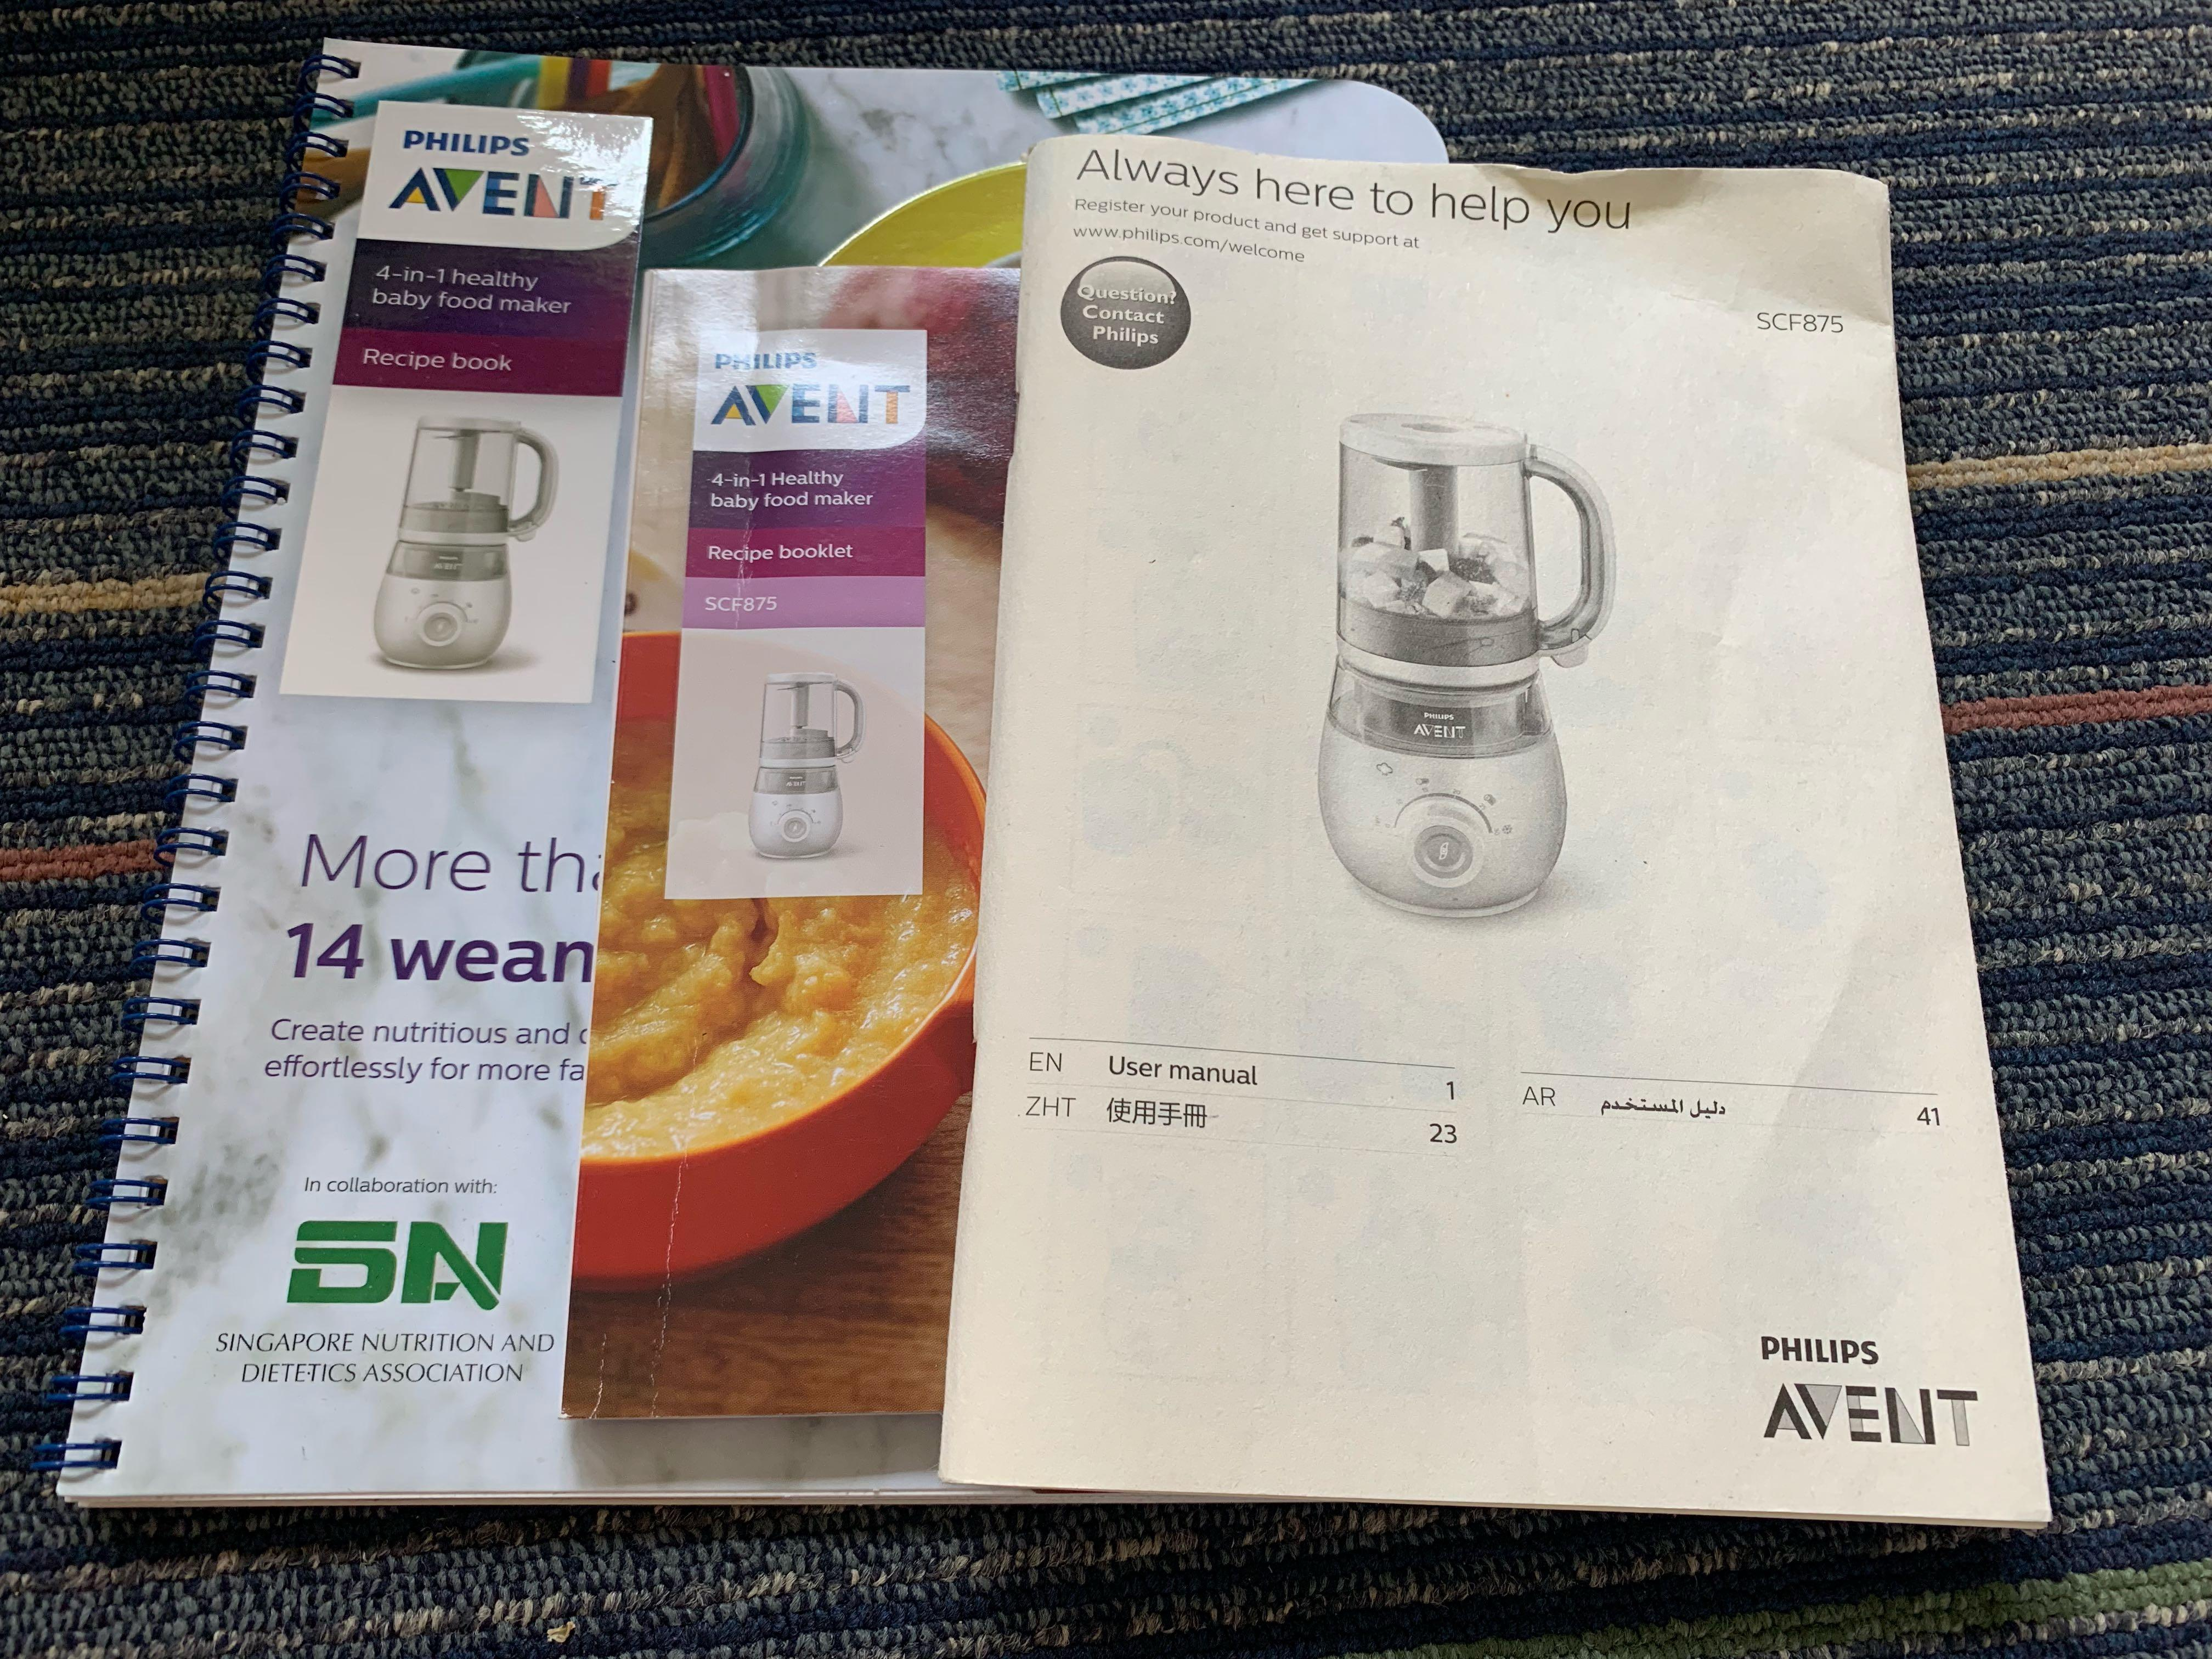 Phillips Avent 4 in 1 Food Maker